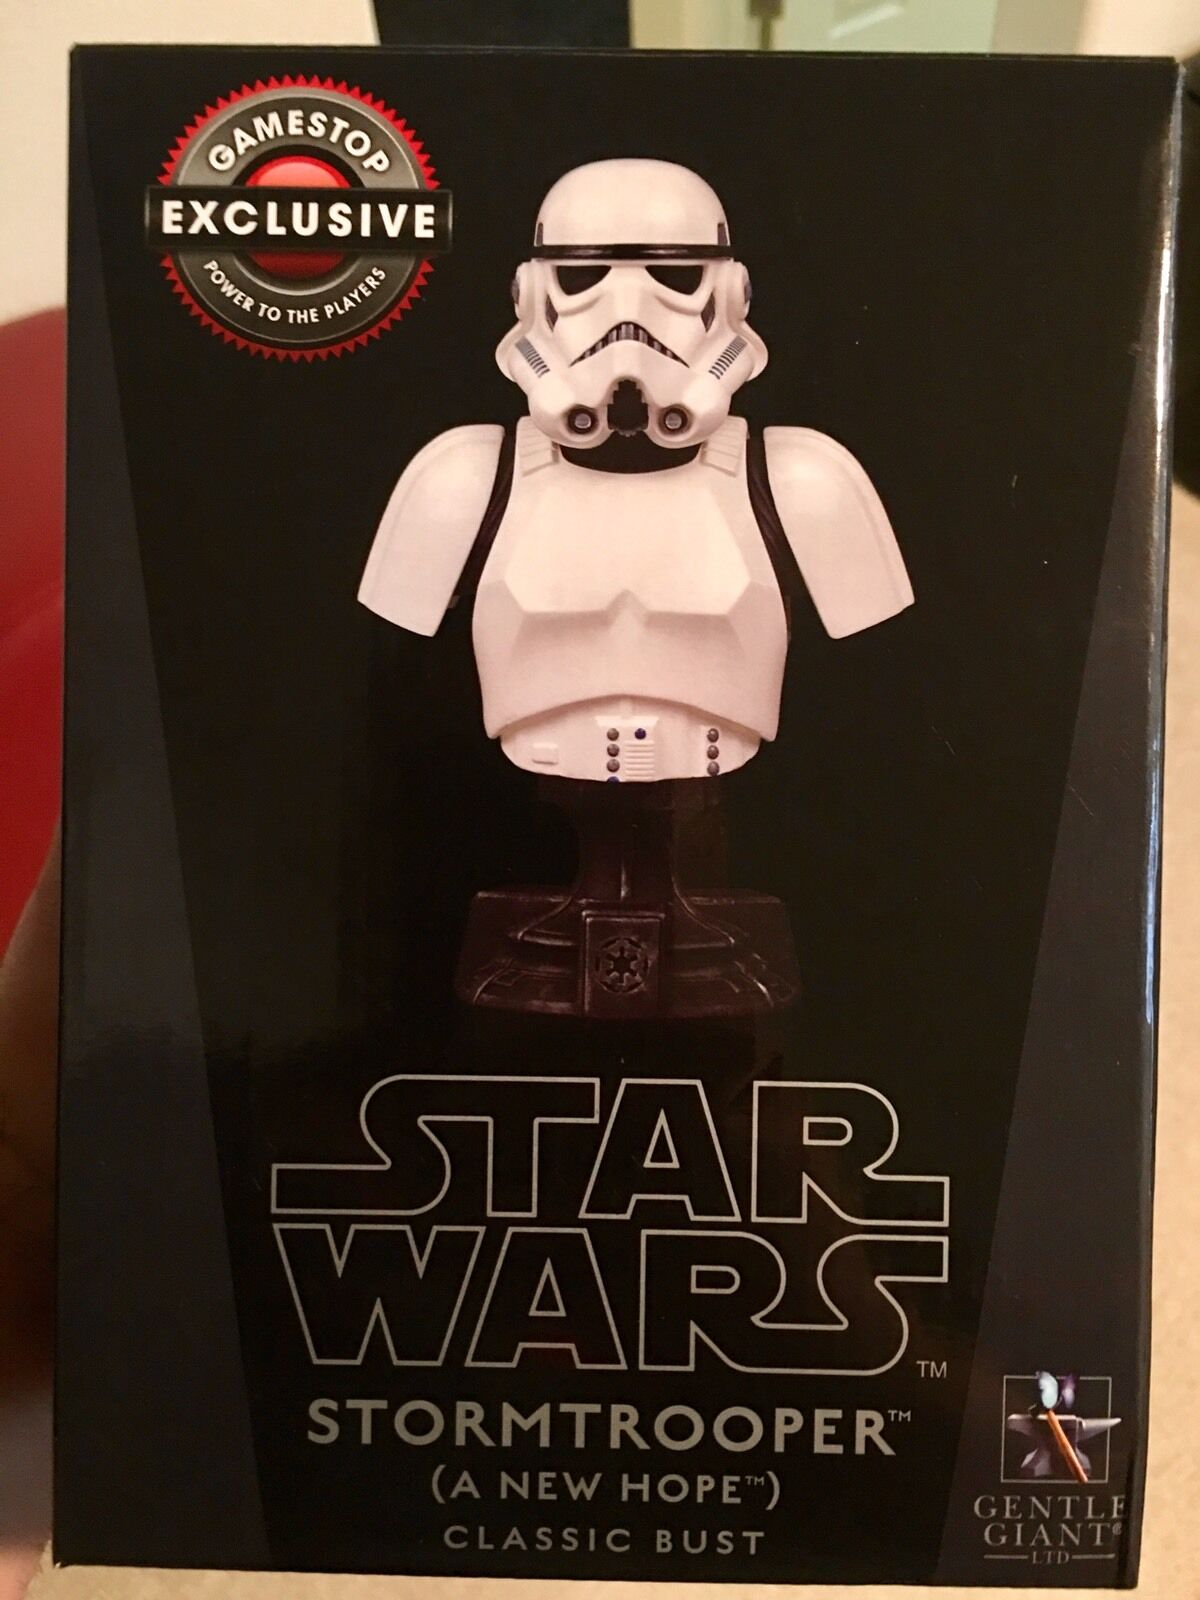 1 6 Scale Star Wars Stormtrooper Classic Bust A New Hope Gentle Giant GameStop